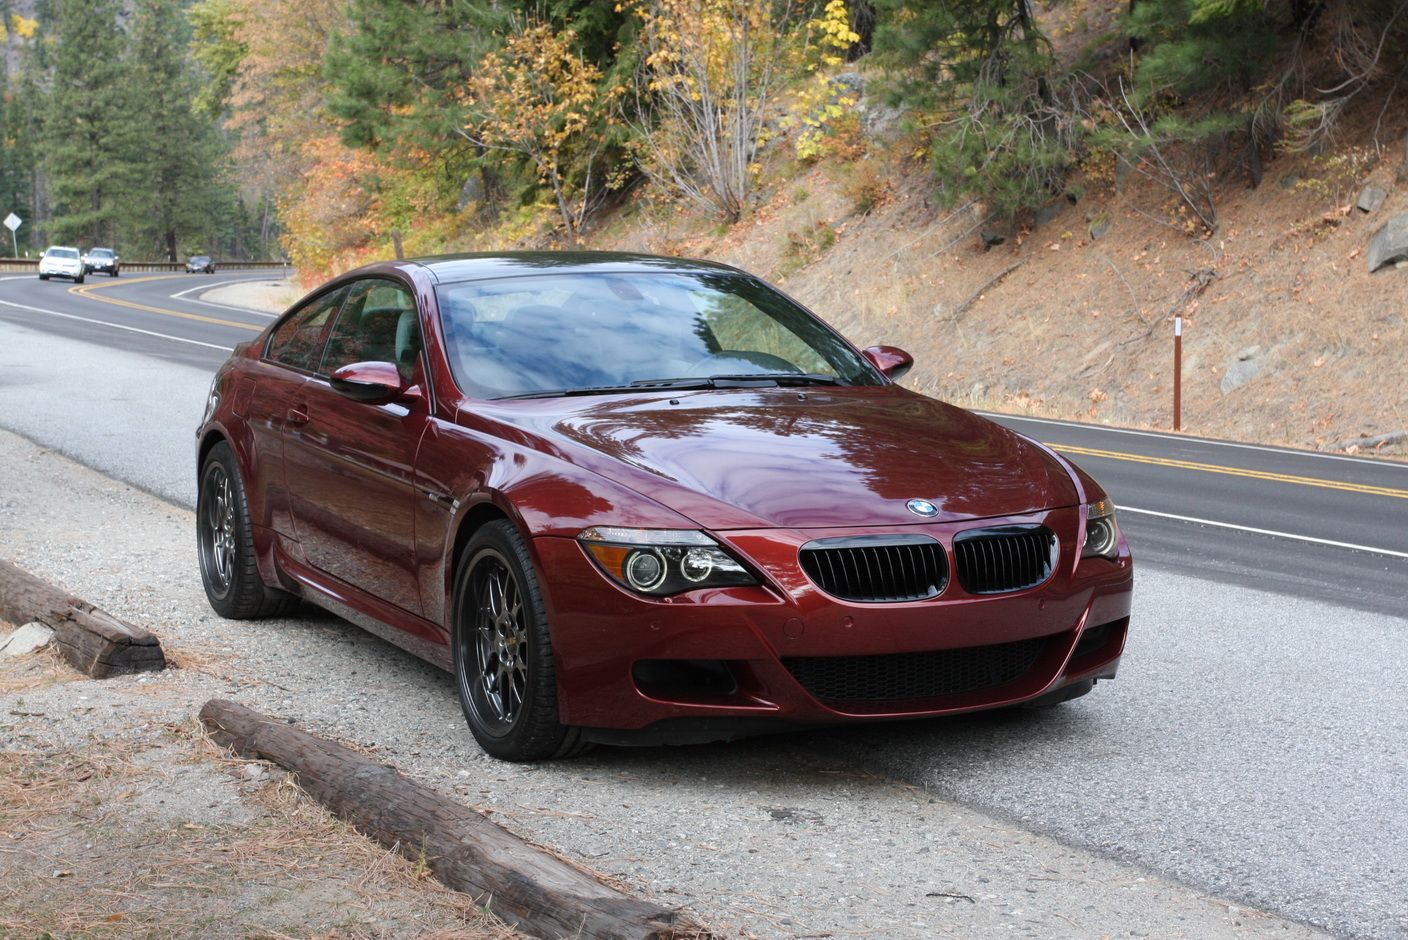 BMW M6 Coupe   In Burgundy (Indianaplois Red) With BBS Wheels   Now This